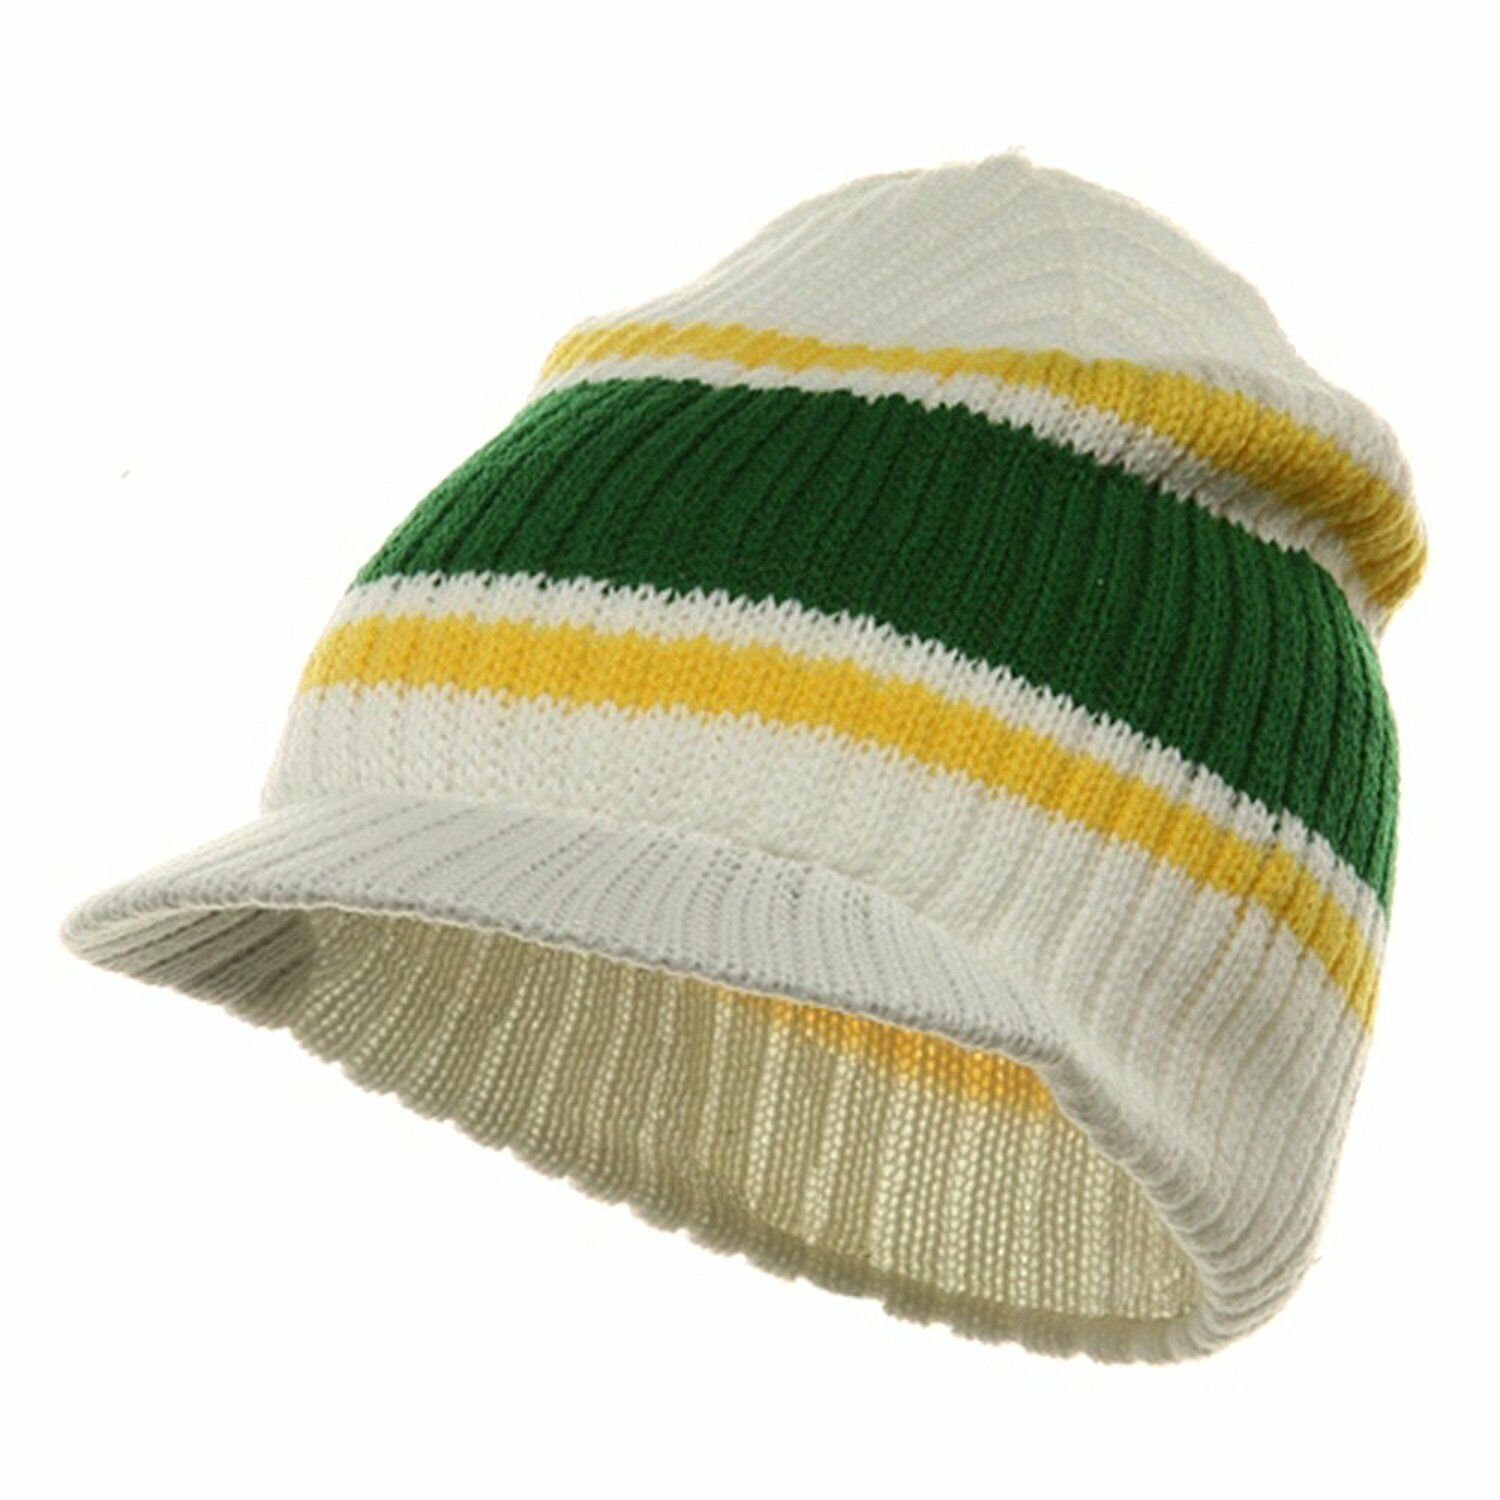 245807c3f05 Details about White Green Yellow Striped Campus Visor Jeep Skull Knit  Winter Beanie Cap Hat